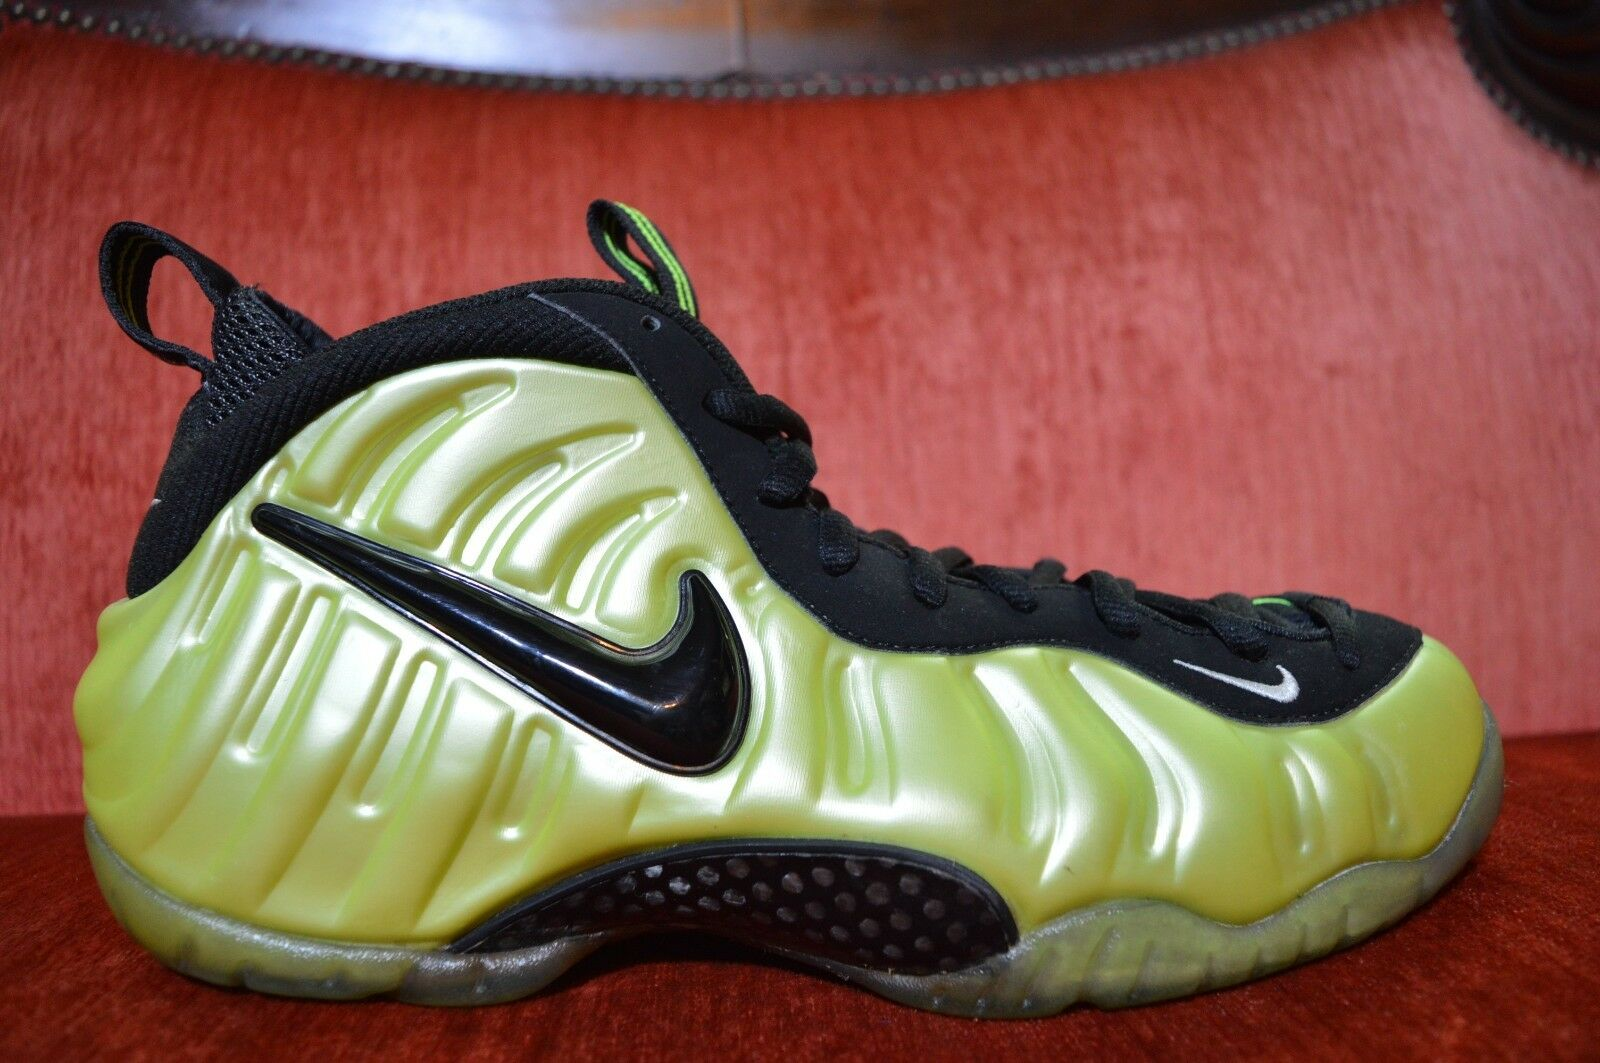 CLEAN Nike Air Foamposite Pro ELECTRIC GREEN 624041-300 size 11 electrolime